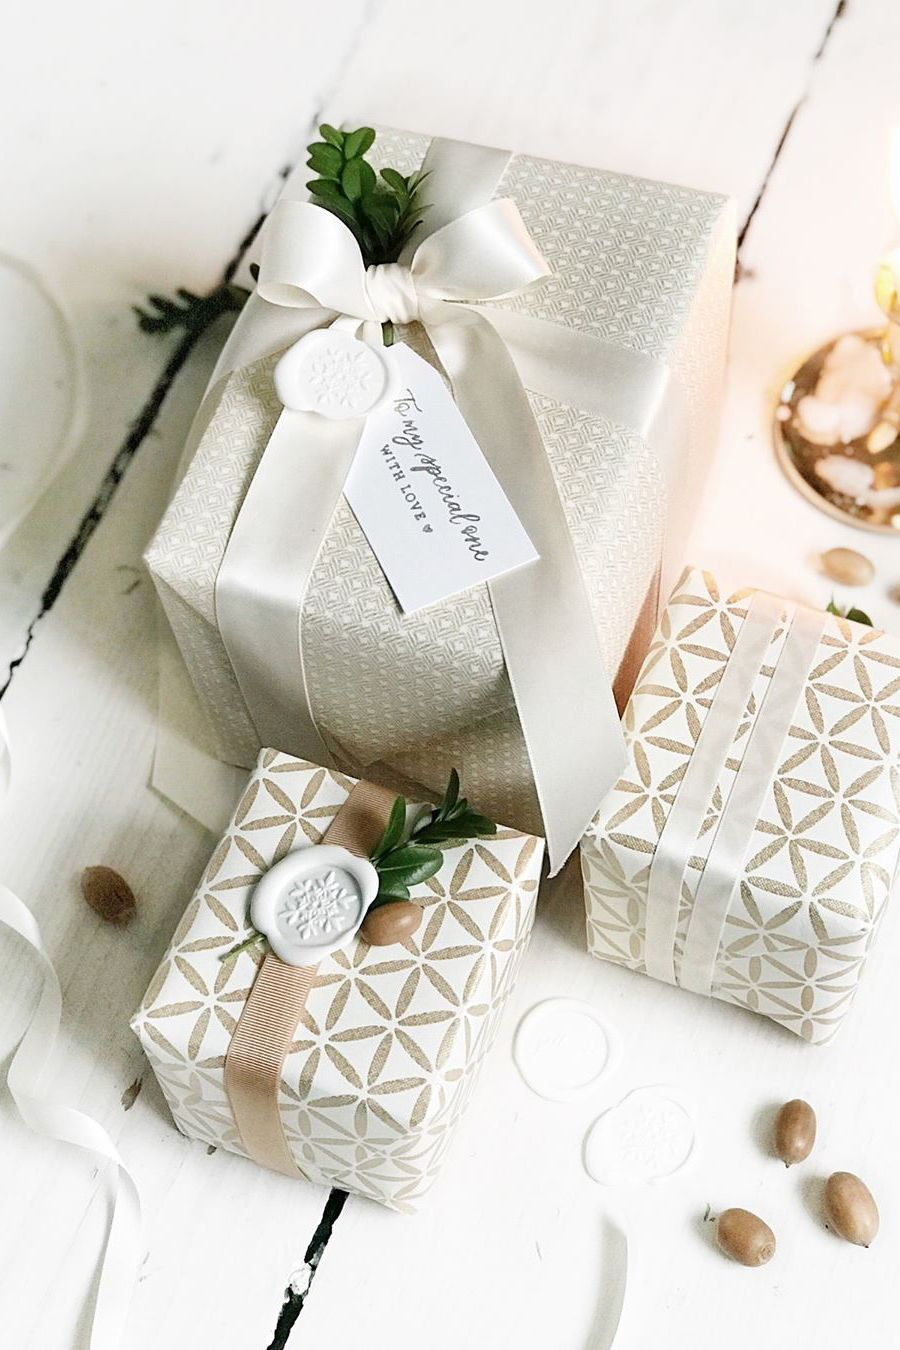 Elegant Christmas Gift Wrapping Idea With Custom Calligraphy Stamped Tag By Yournewfriendsam On Etsy Gift Elegant Gift Wrapping Christmas Gift Wrapping Gifts